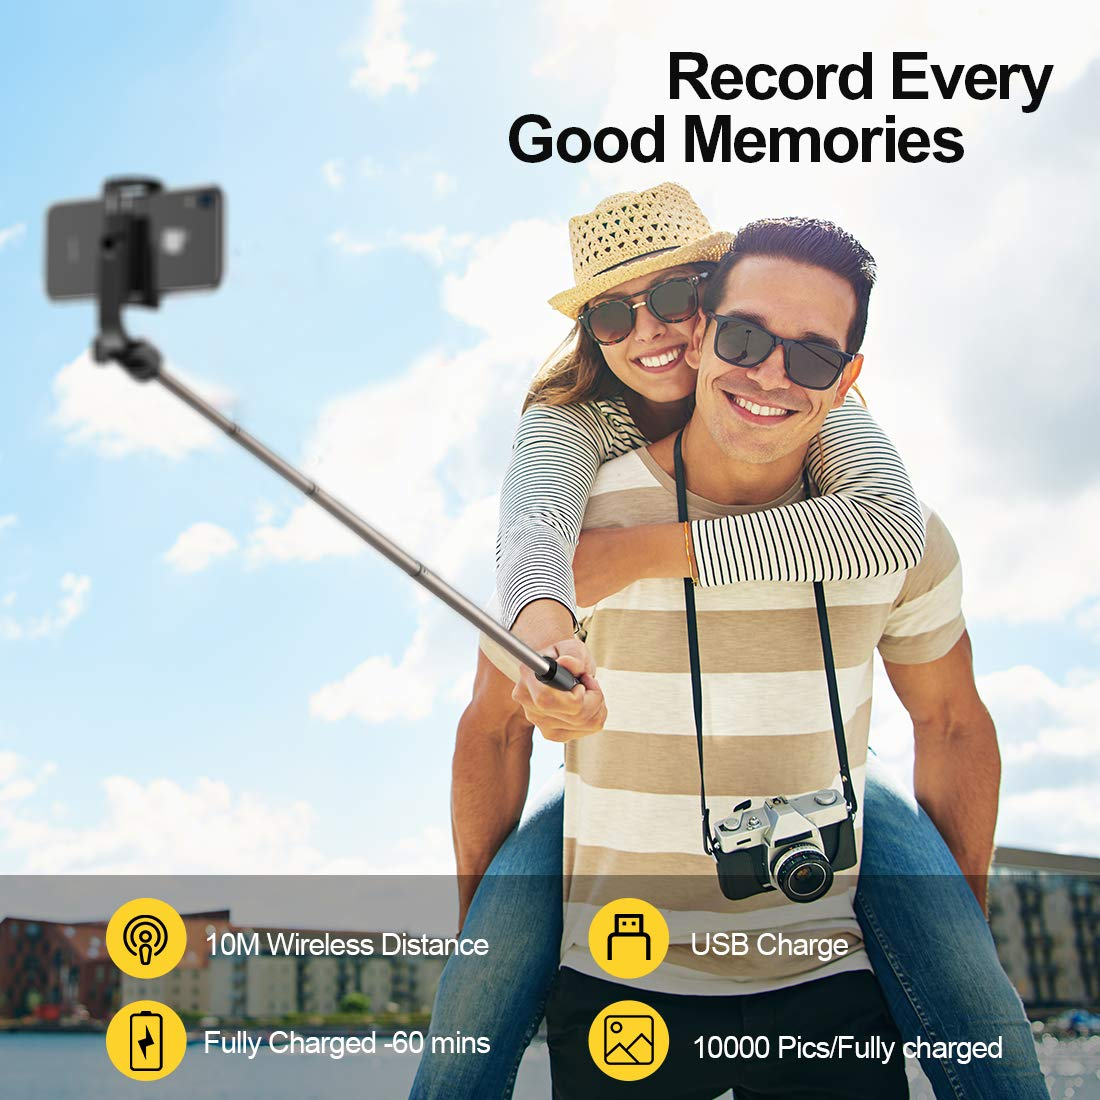 Humixx Selfie Stick, Buletooth 4-in-1 Extendable Selfie Stick Tripod 360° Rotation, Rechargeable Wireless Remote Shutter Compatible with iPhone XR/XS Max, Samsung S10+, Huawei P30, Go Pro and Cameras by Humixx (Image #6)